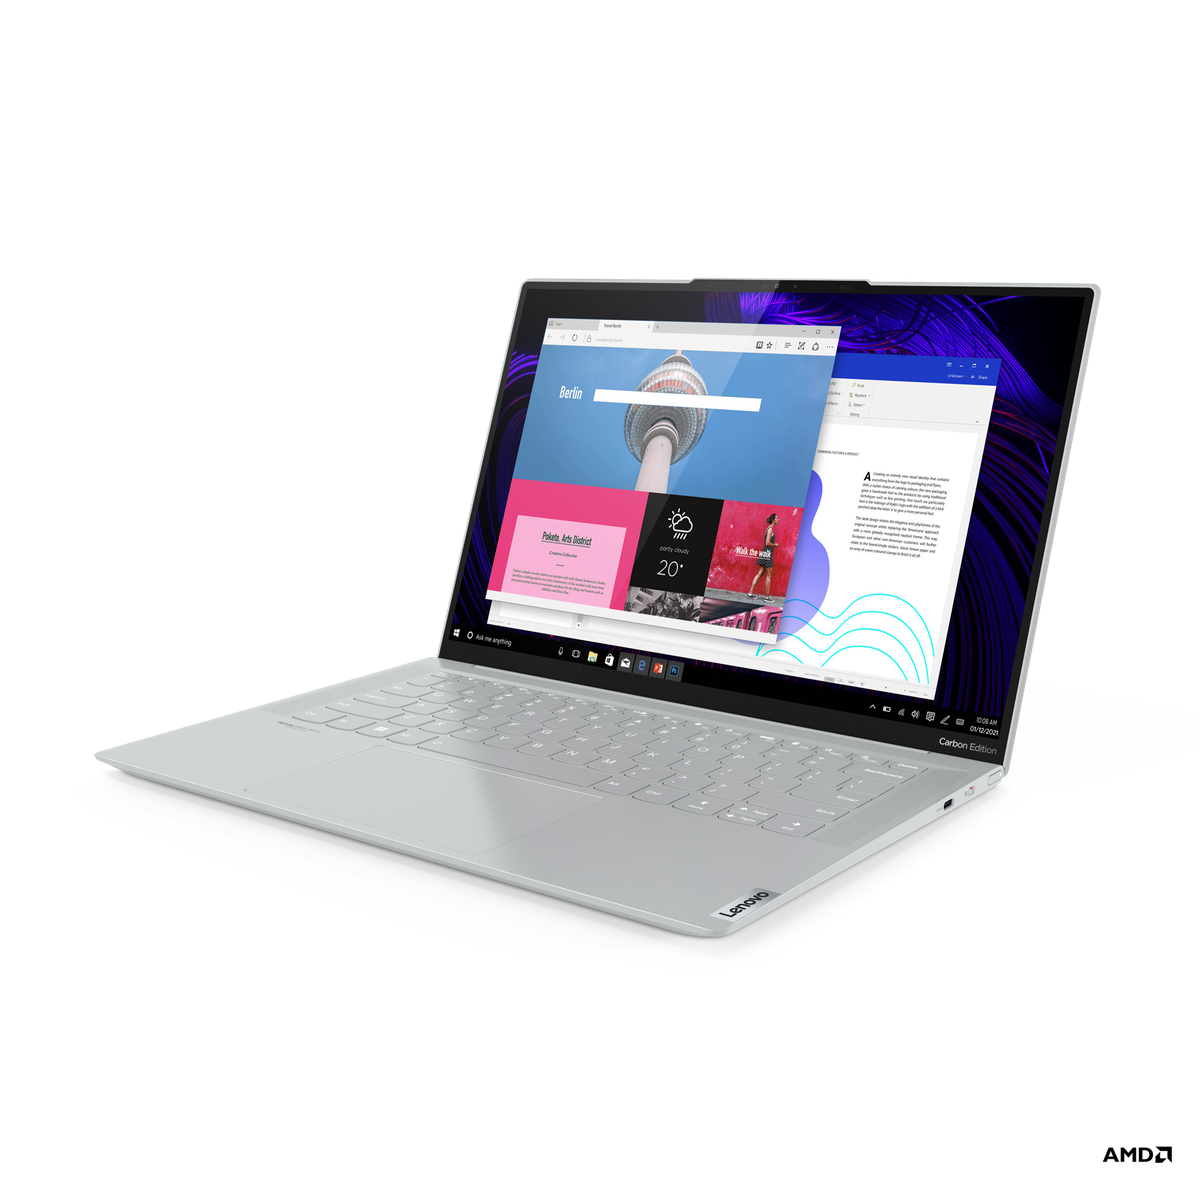 The IdeaPad Slim 7 Carbon open on a white background, facing left. The screen displays two windowed apps on a black and purple background.